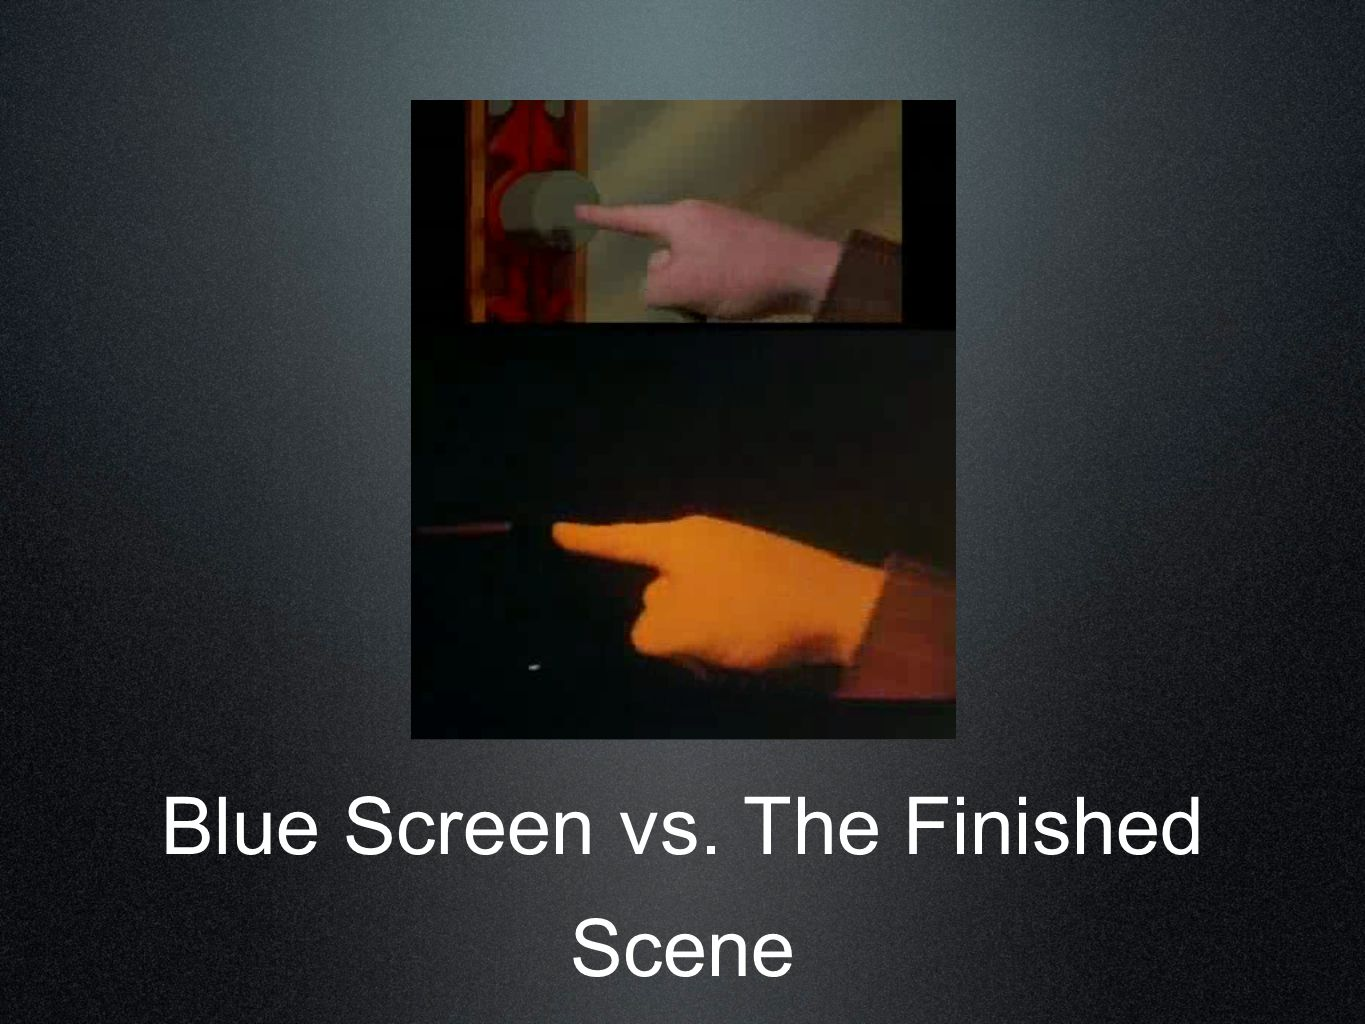 Blue Screen vs. The Finished Scene